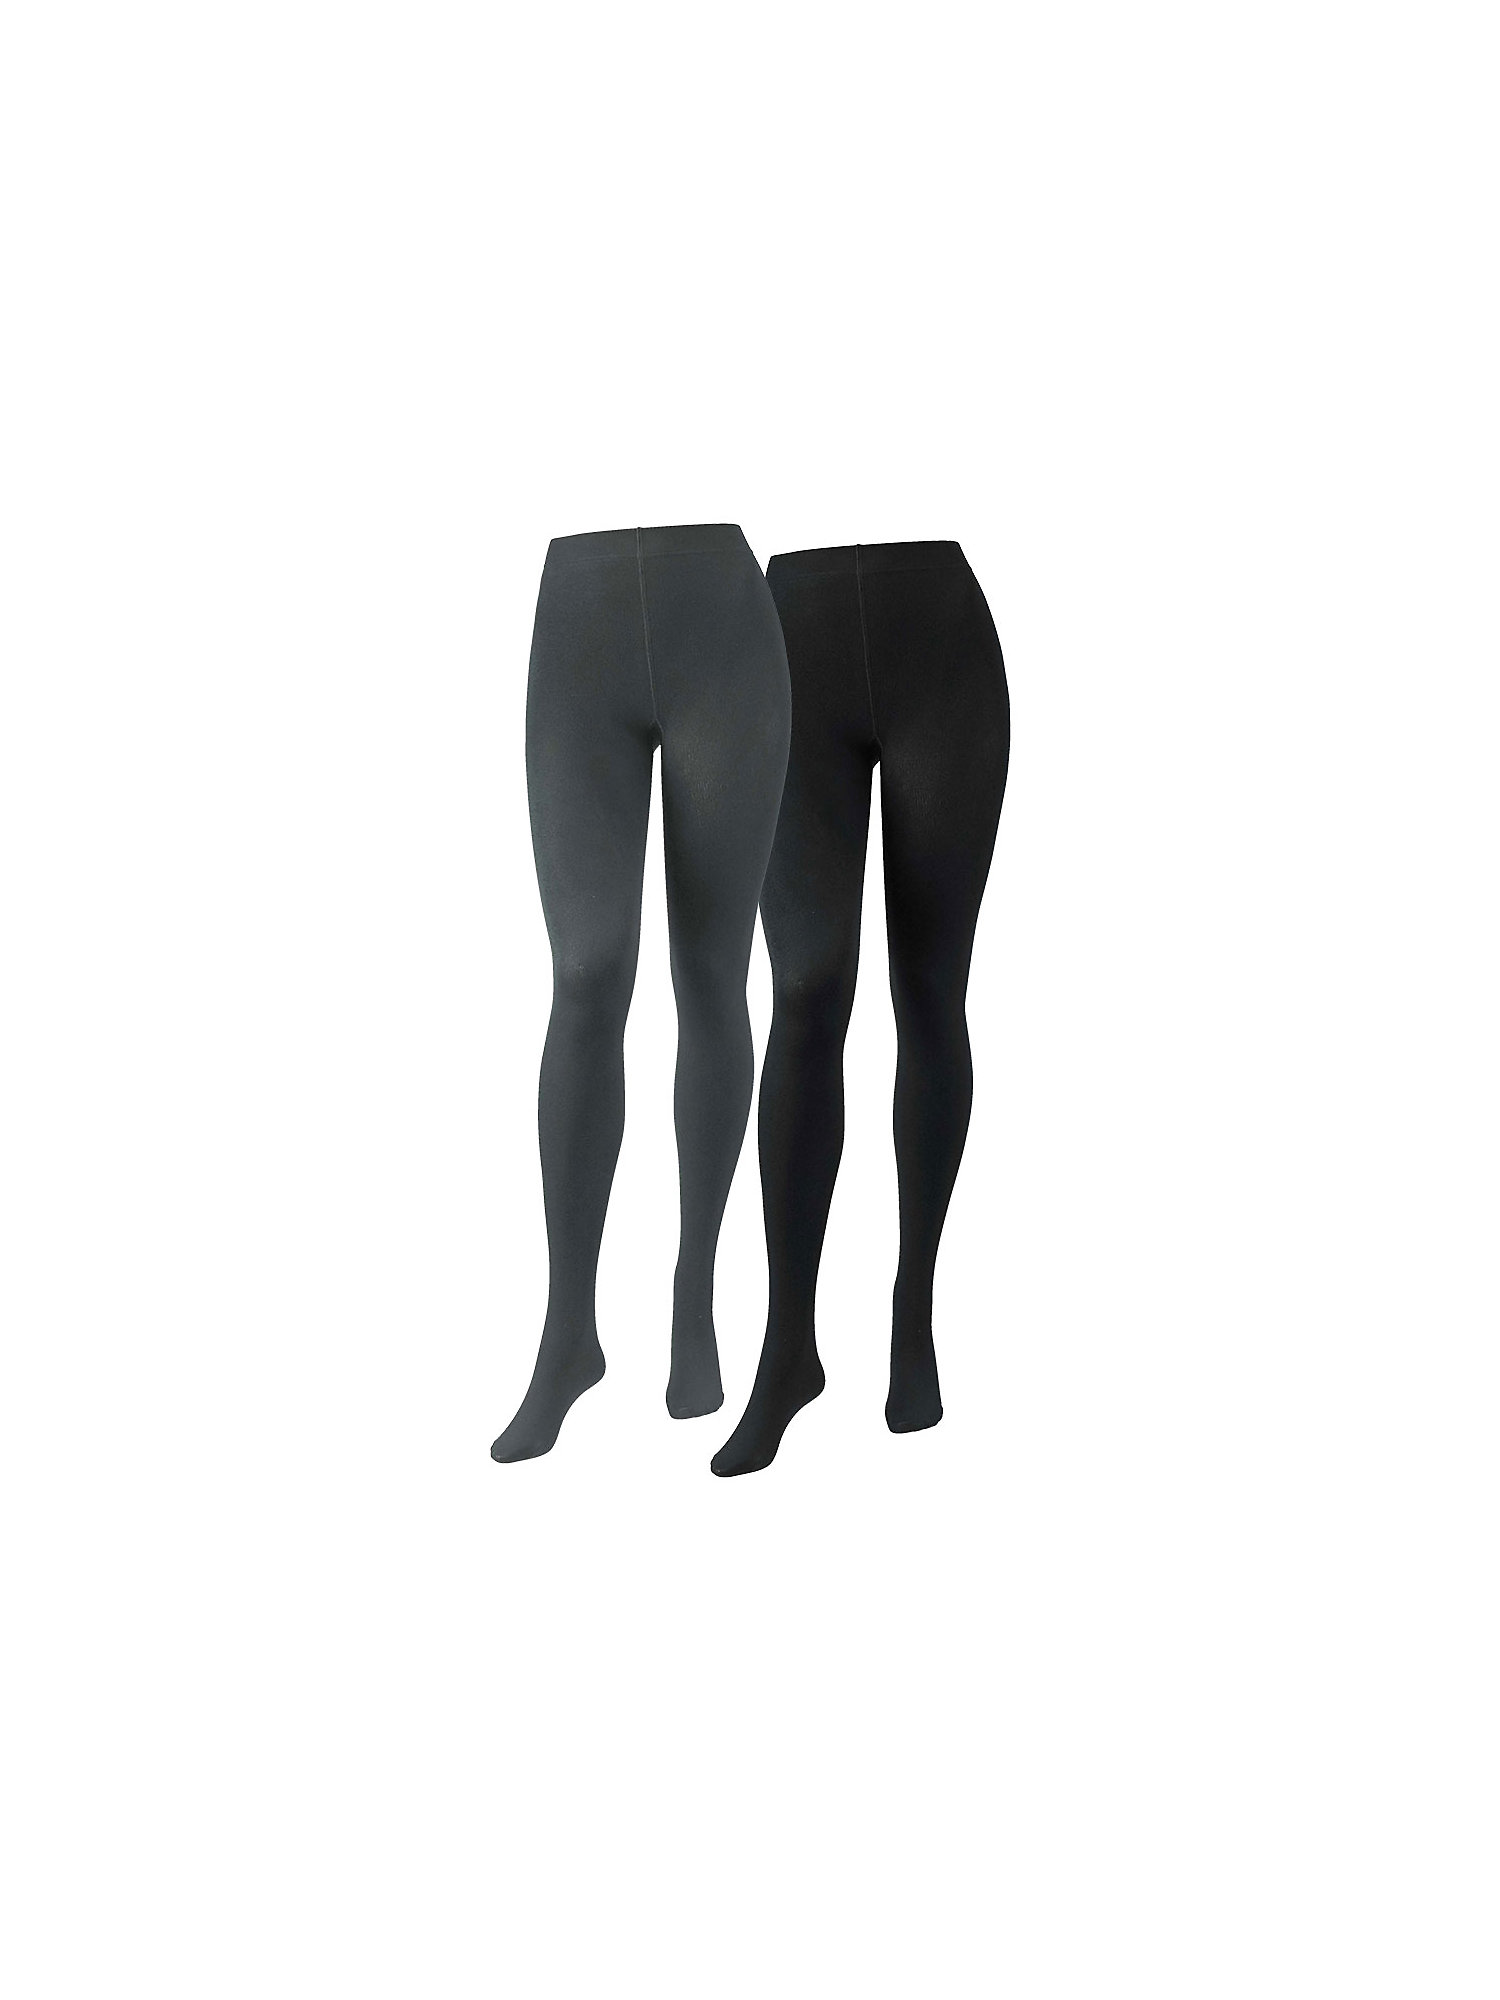 920d8c694a536 Details about Legendary Whitetails Muk Luks Ladies Fleece Lined Tights  2-Pack